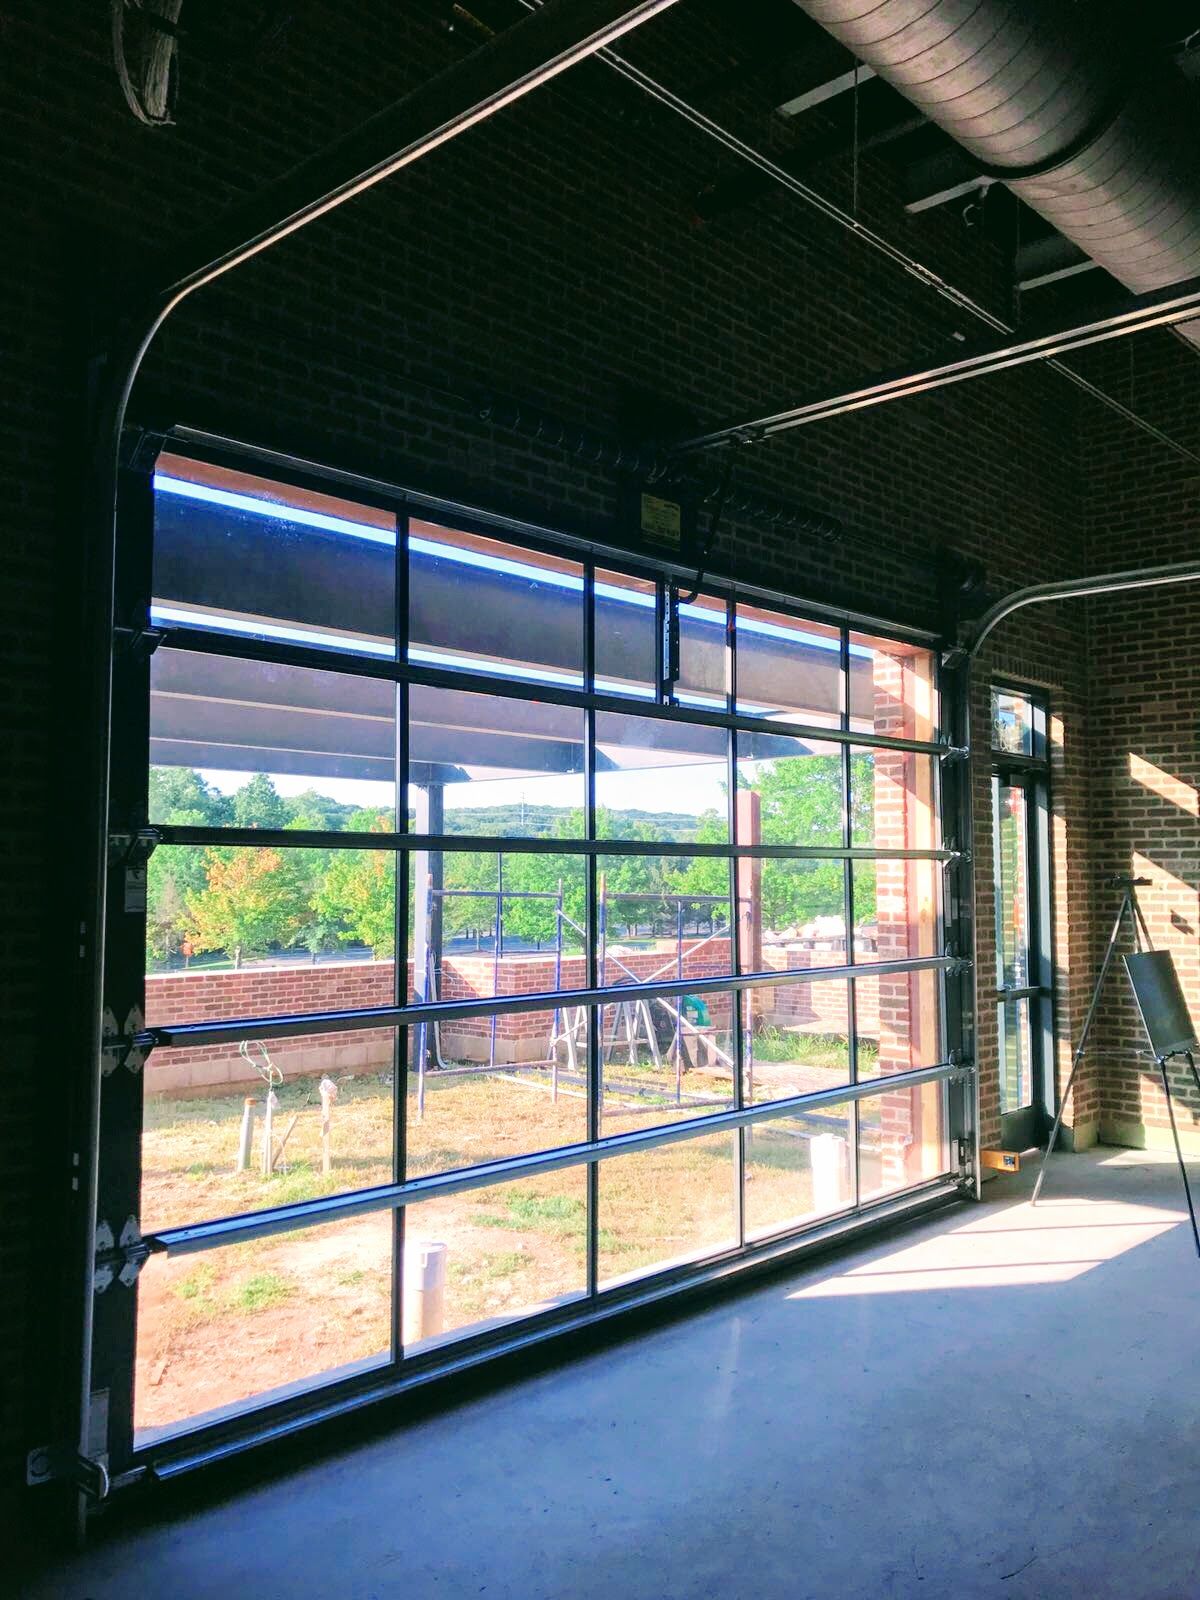 Aluminum Glass Garage Overhead Sectional Roller Doors In Make Your Own Beautiful  HD Wallpapers, Images Over 1000+ [ralydesign.ml]